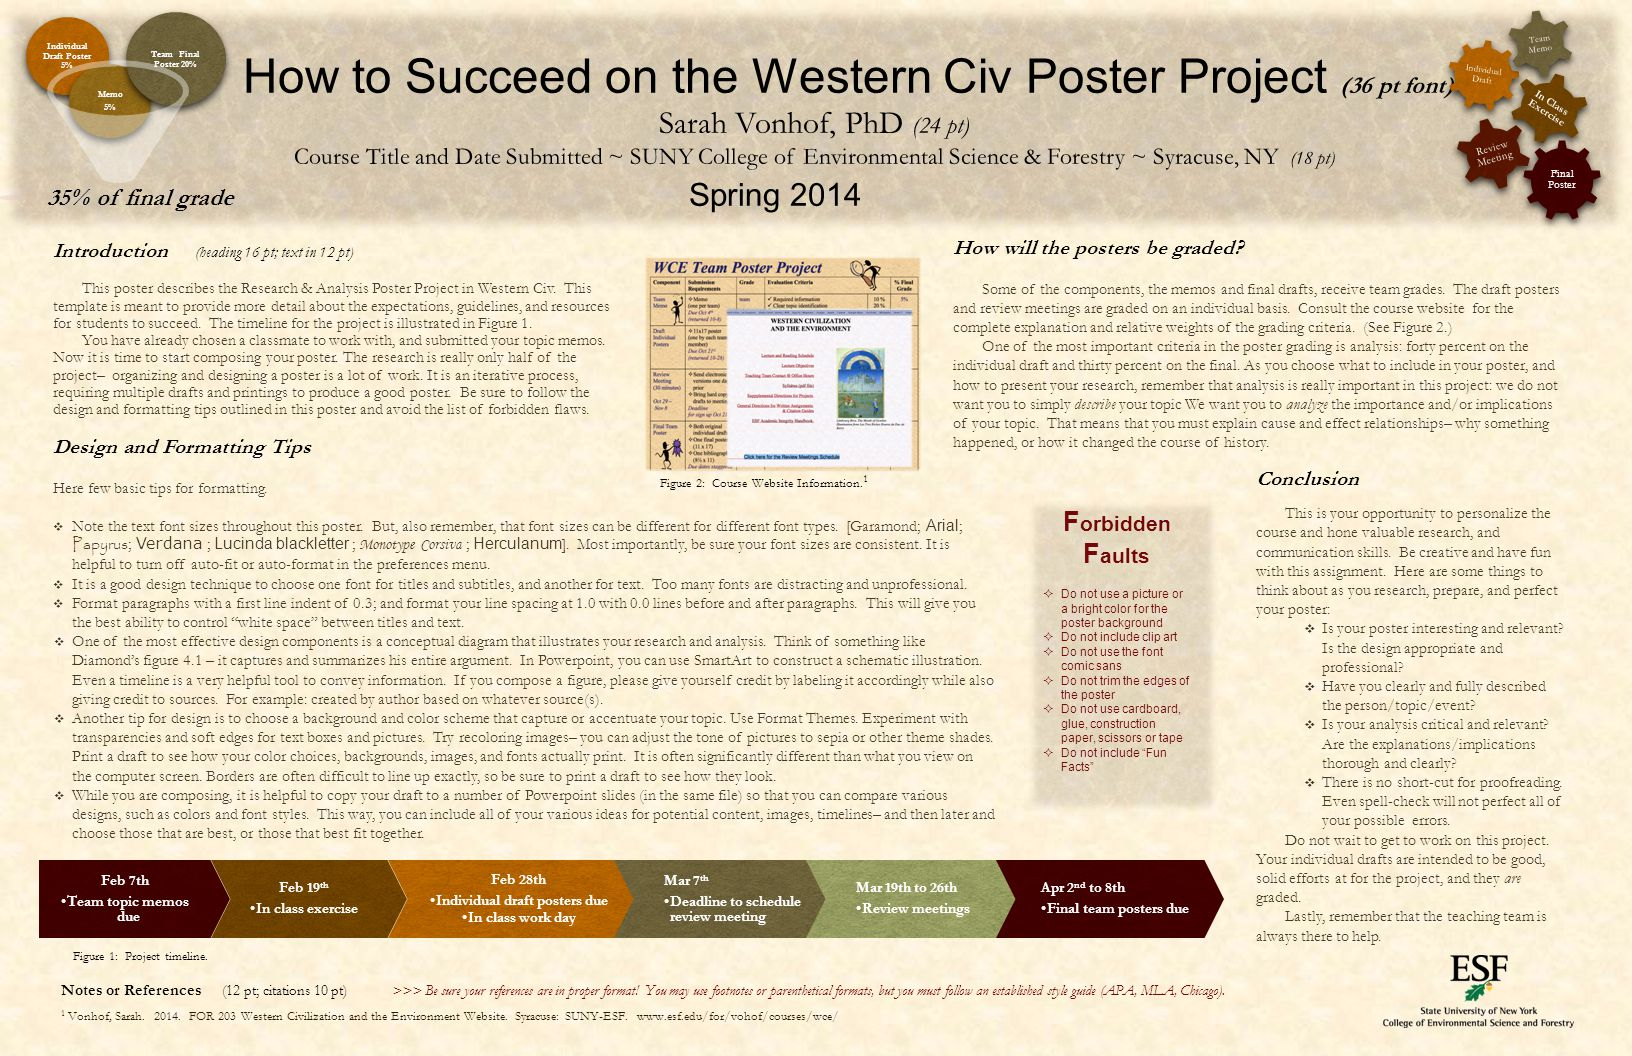 Introduction (heading 16 pt; text in 12 pt) This poster describes the Research & Analysis Poster Project in Western Civ. This template is meant to pro